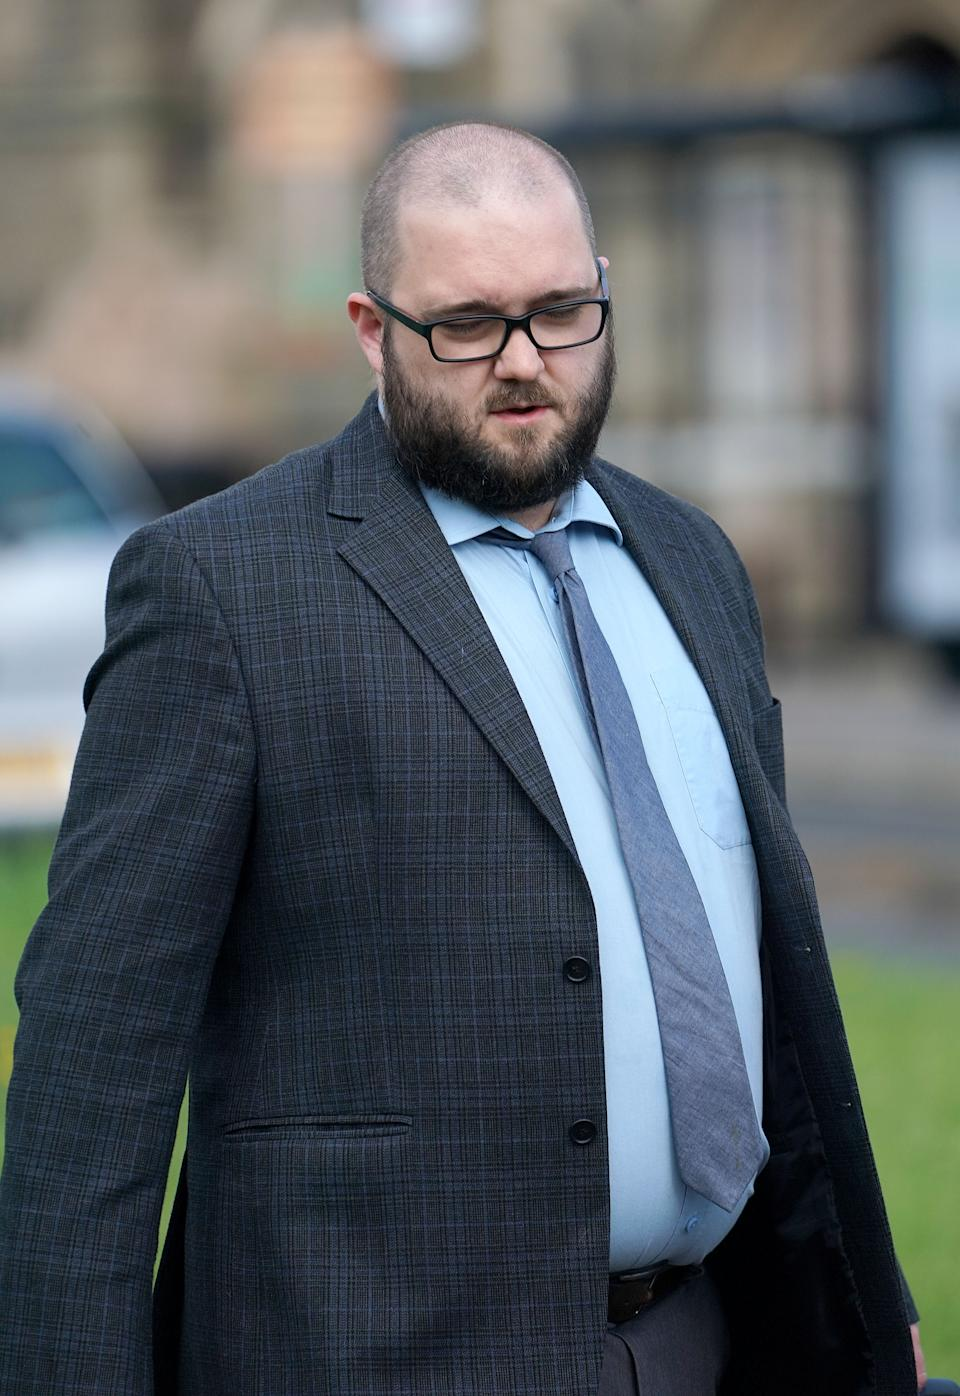 Paul Crowther arrives at North Tyneside Magistrates' Court in North Shields where he faces charges of common assault and criminal damage after throwing a milkshake at Nigel Farage during a city centre walkabout.